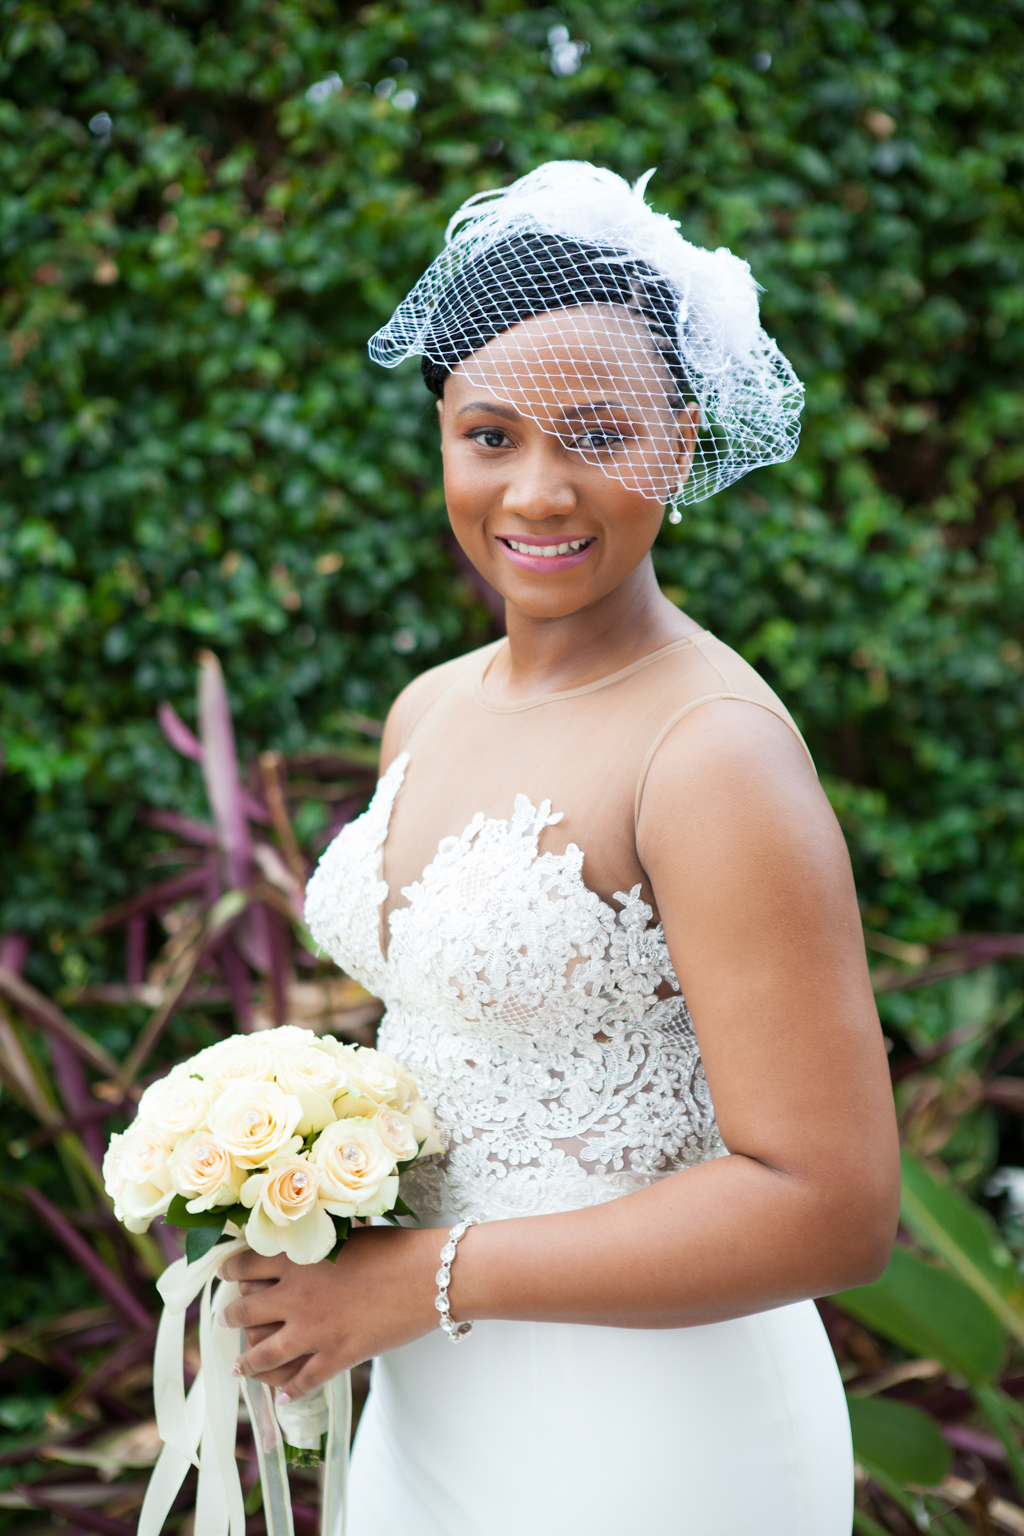 Zinhle Mphathi's Wedding Aimee Hofmann wedding photographer